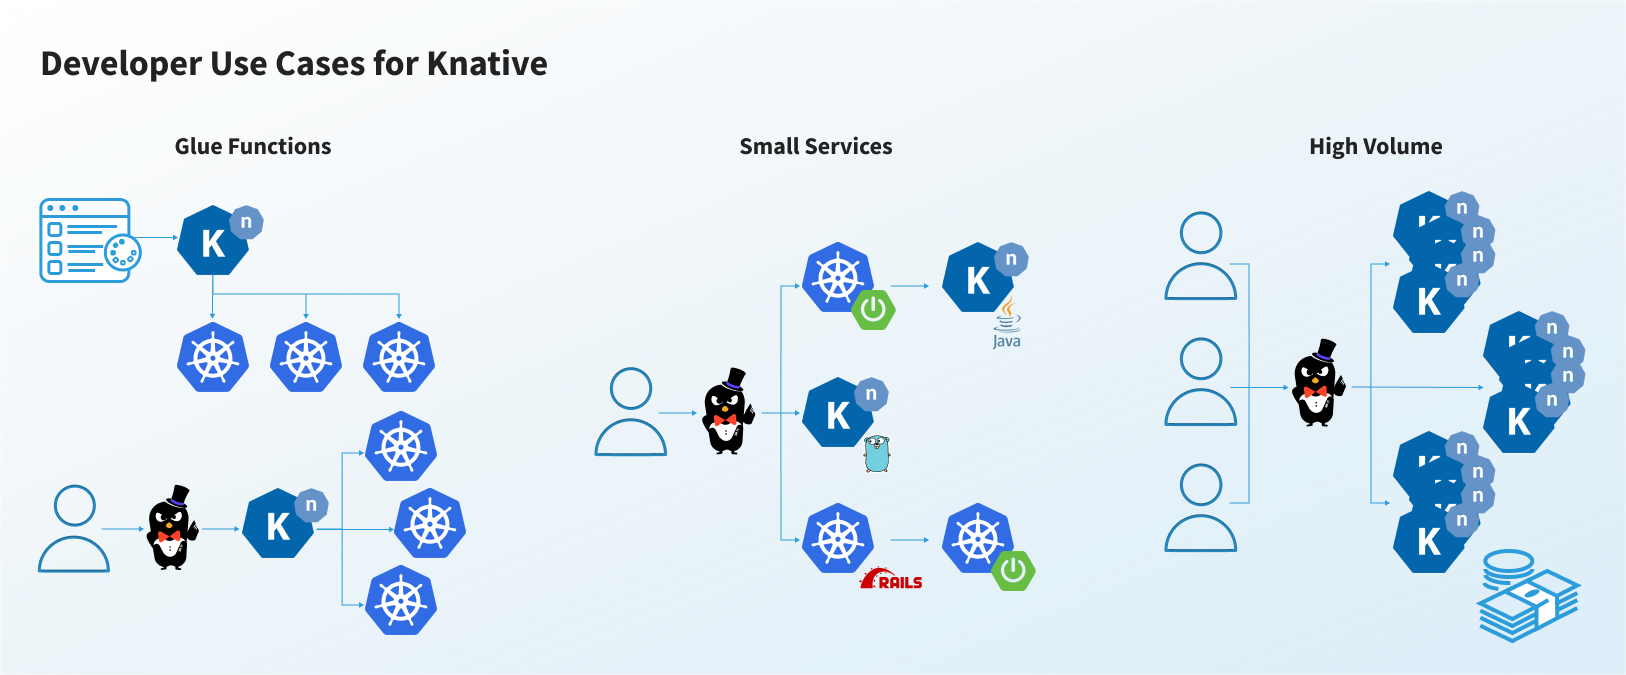 Self-Serverless: Why Run Knative Functions on Your